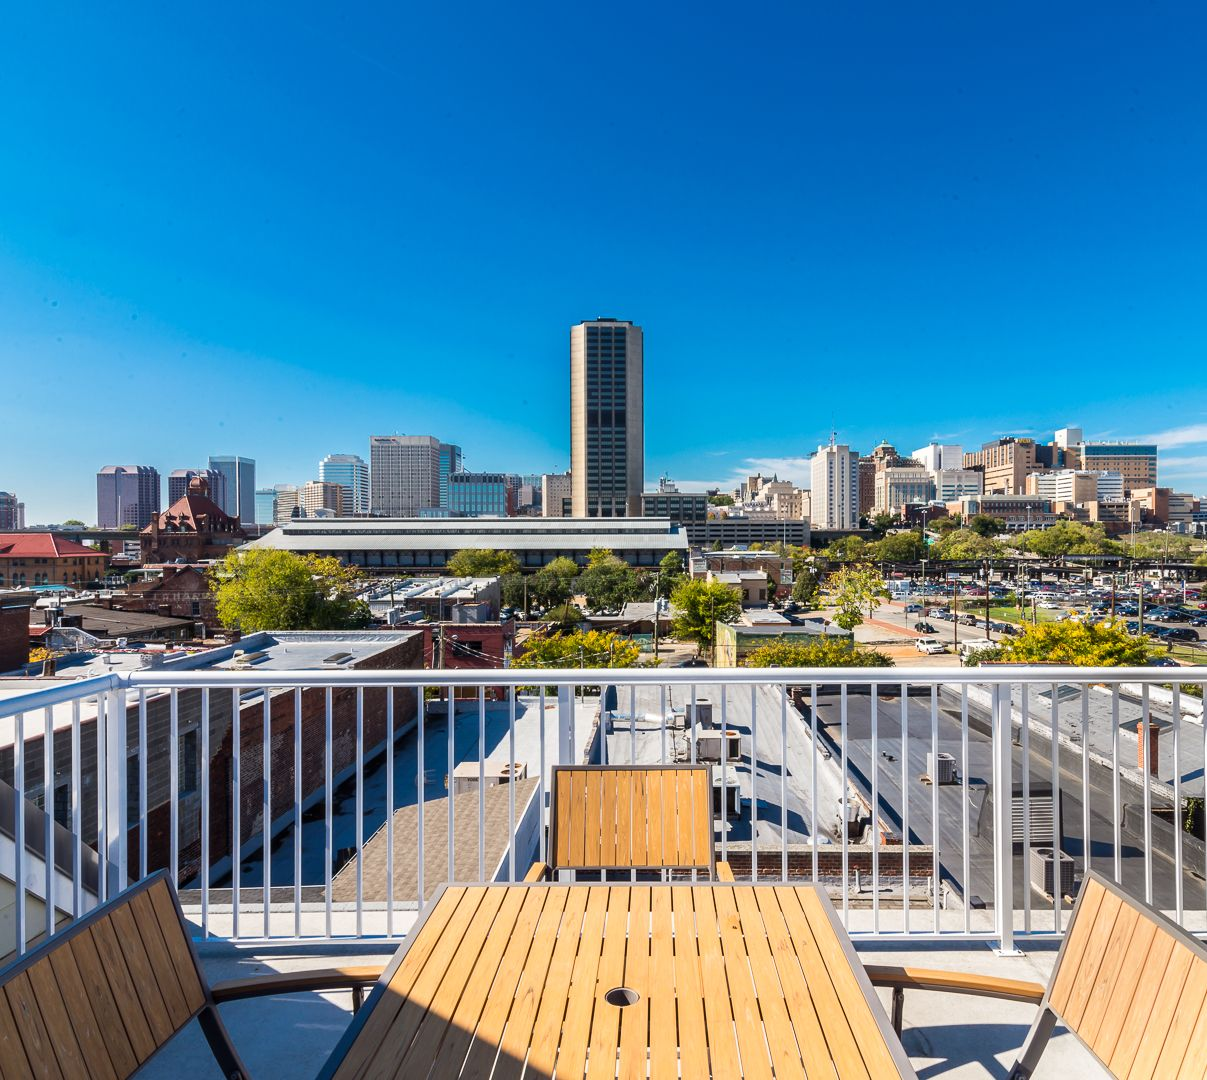 Rooftop view #rva